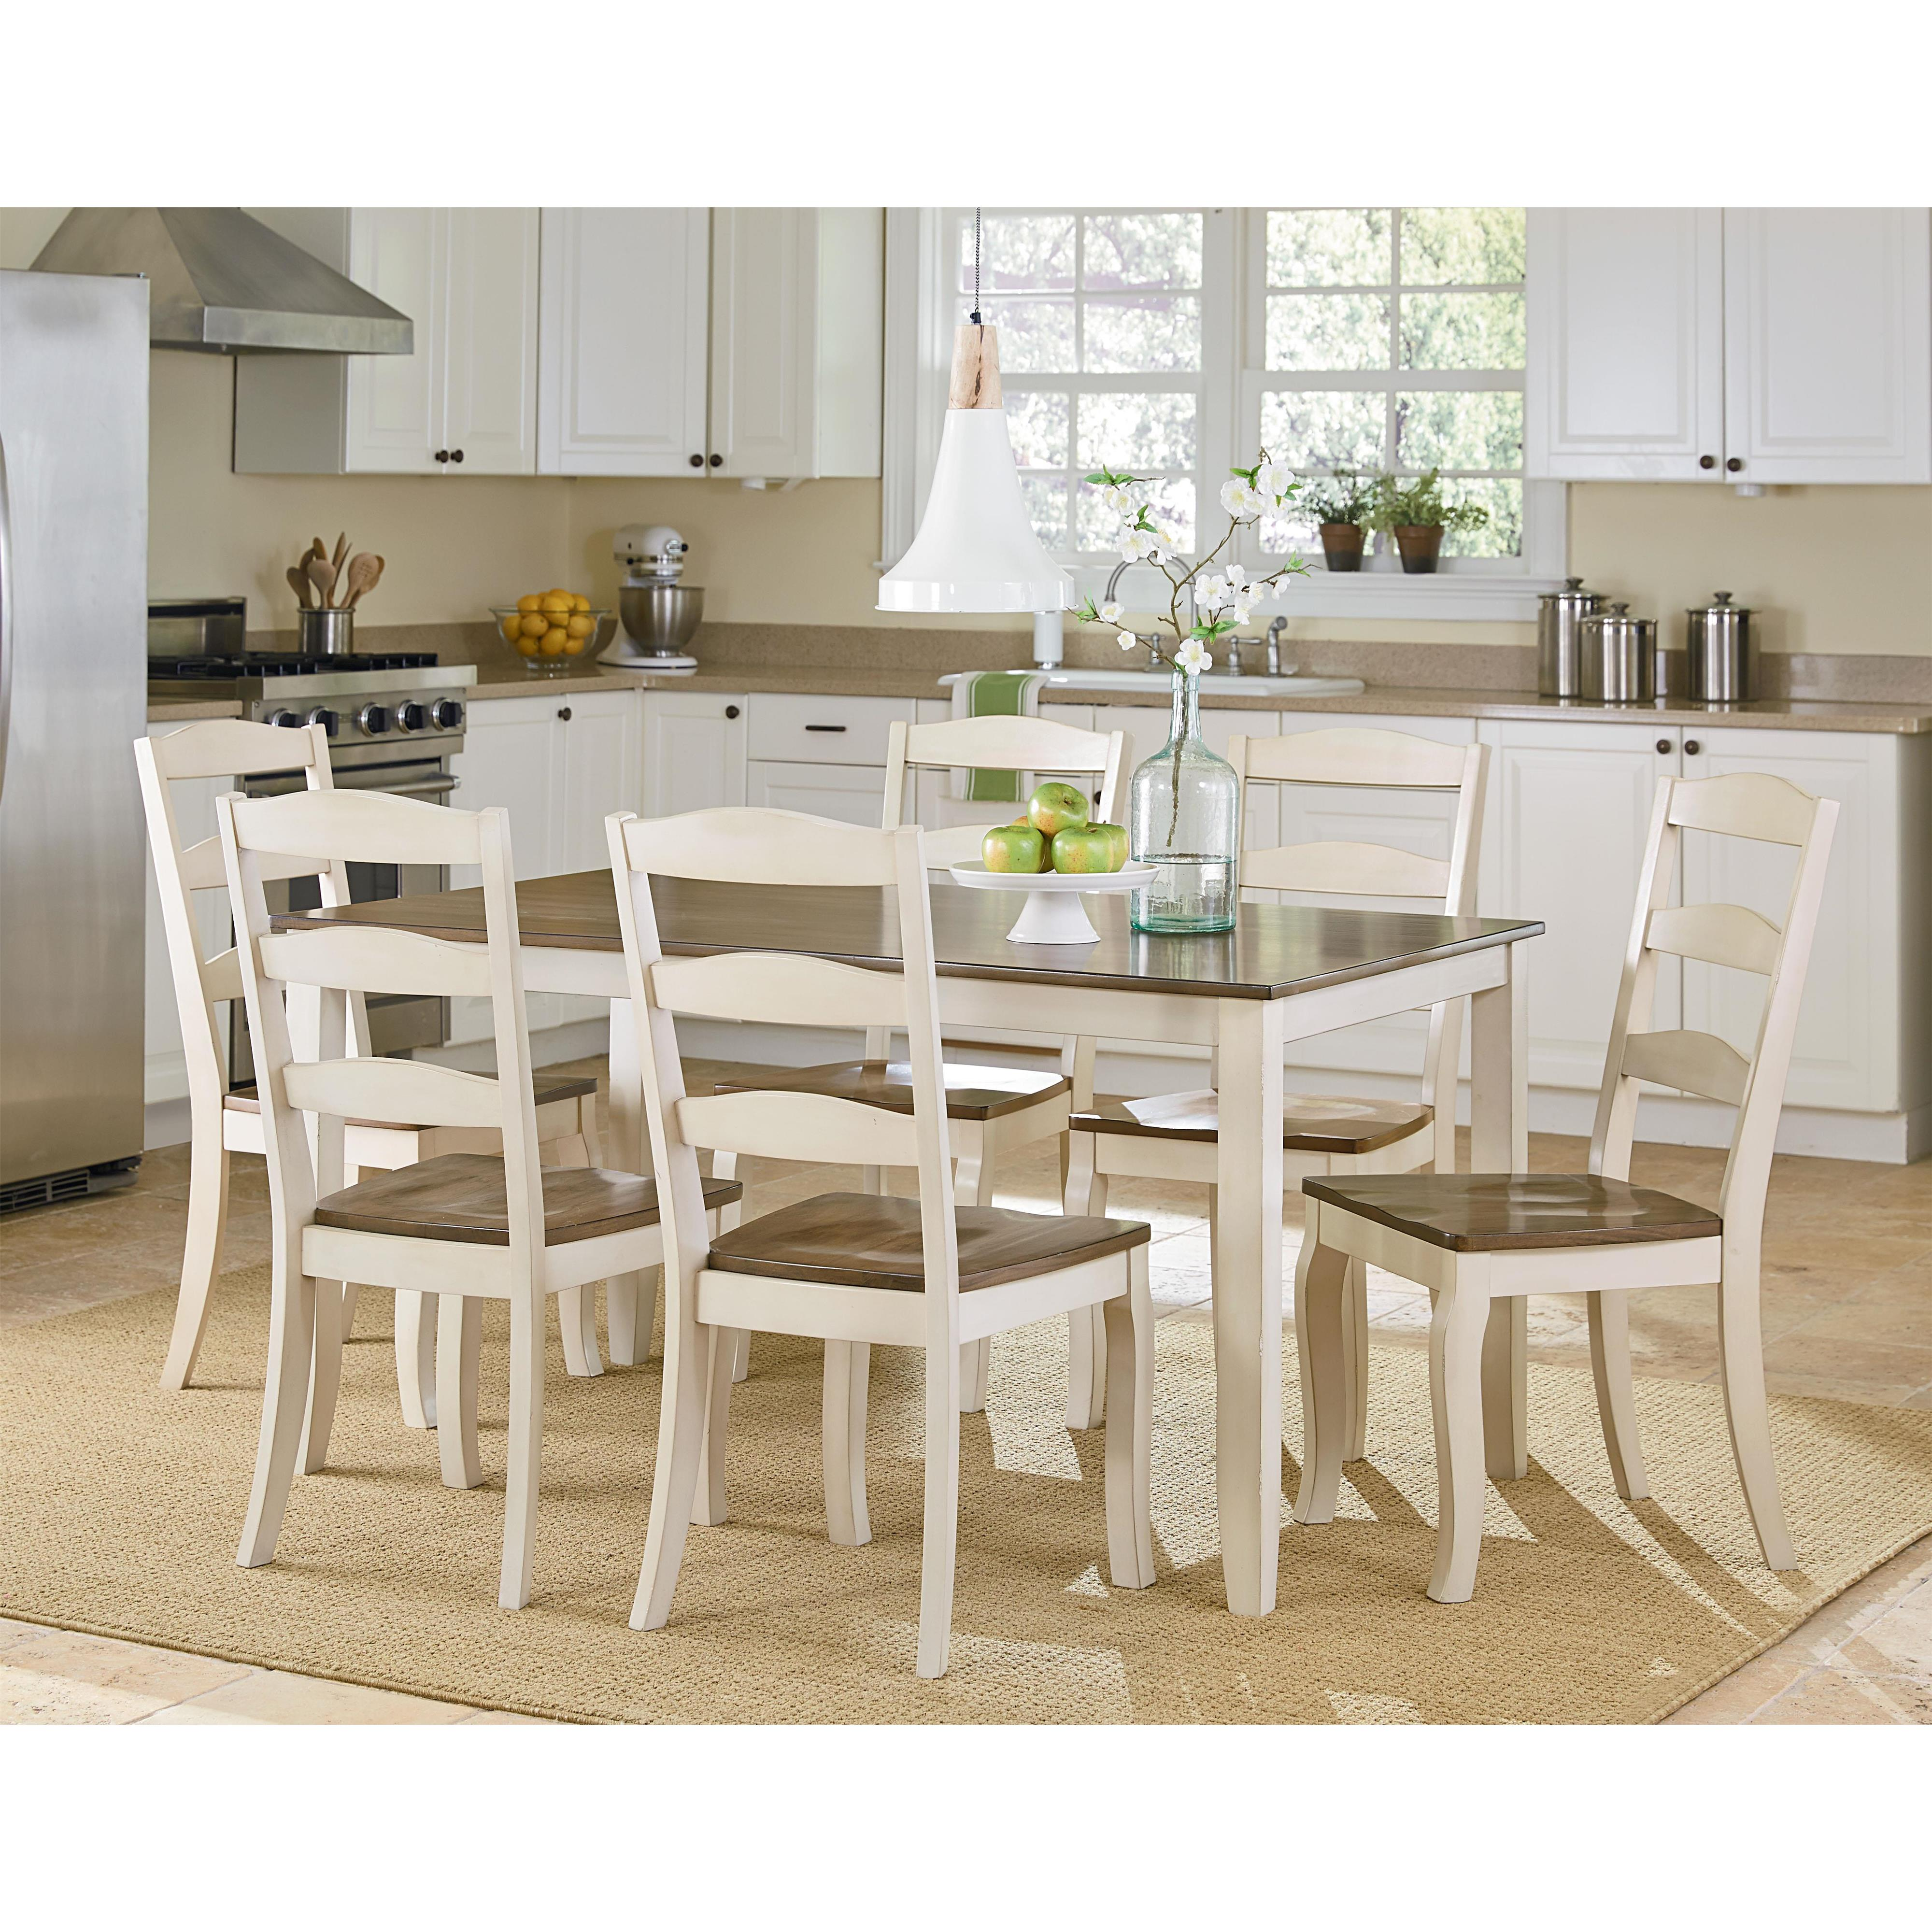 Standard Furniture Highland White Table and Chair Set      - Item Number: 16522